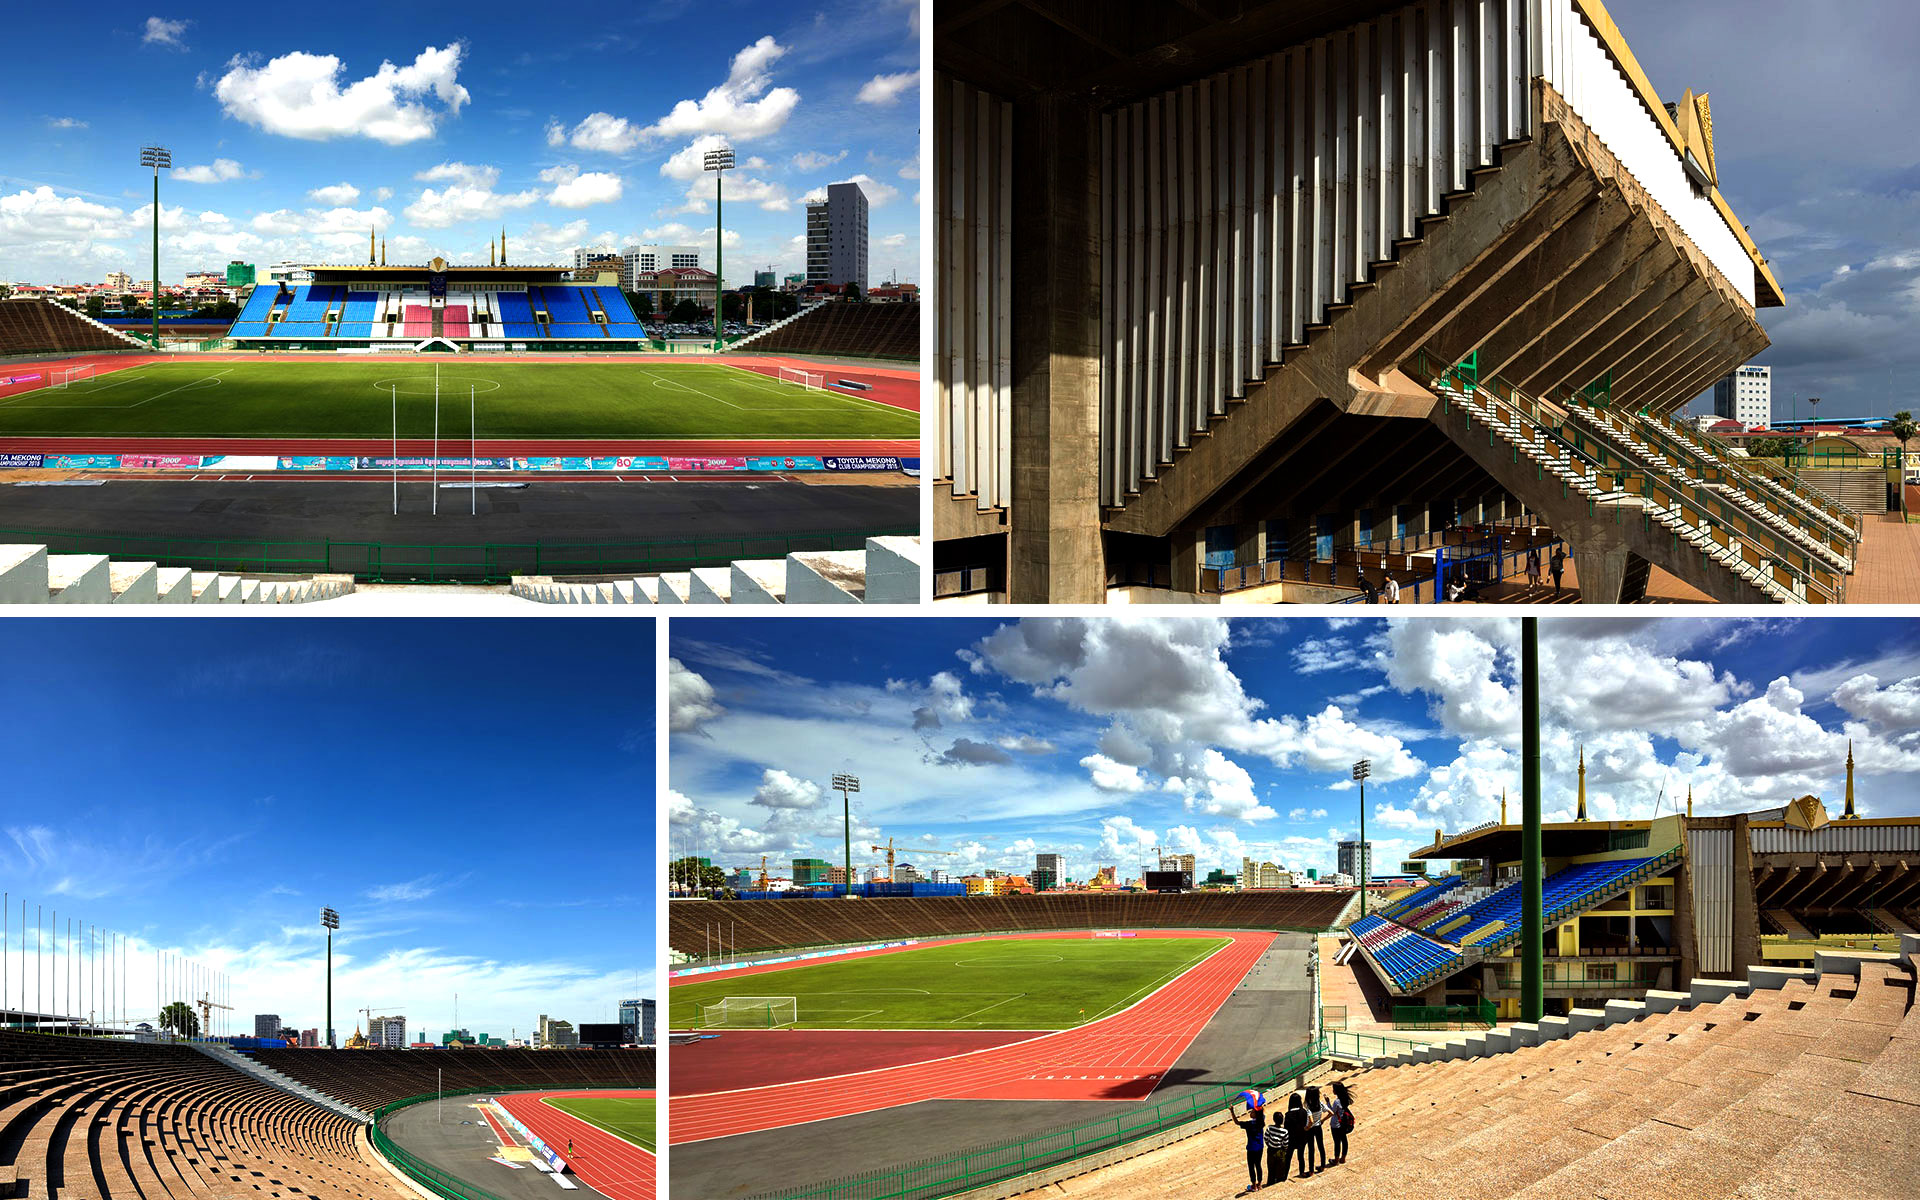 National Sports Complex by Vann Molyvann Phnom Penh Cambodia